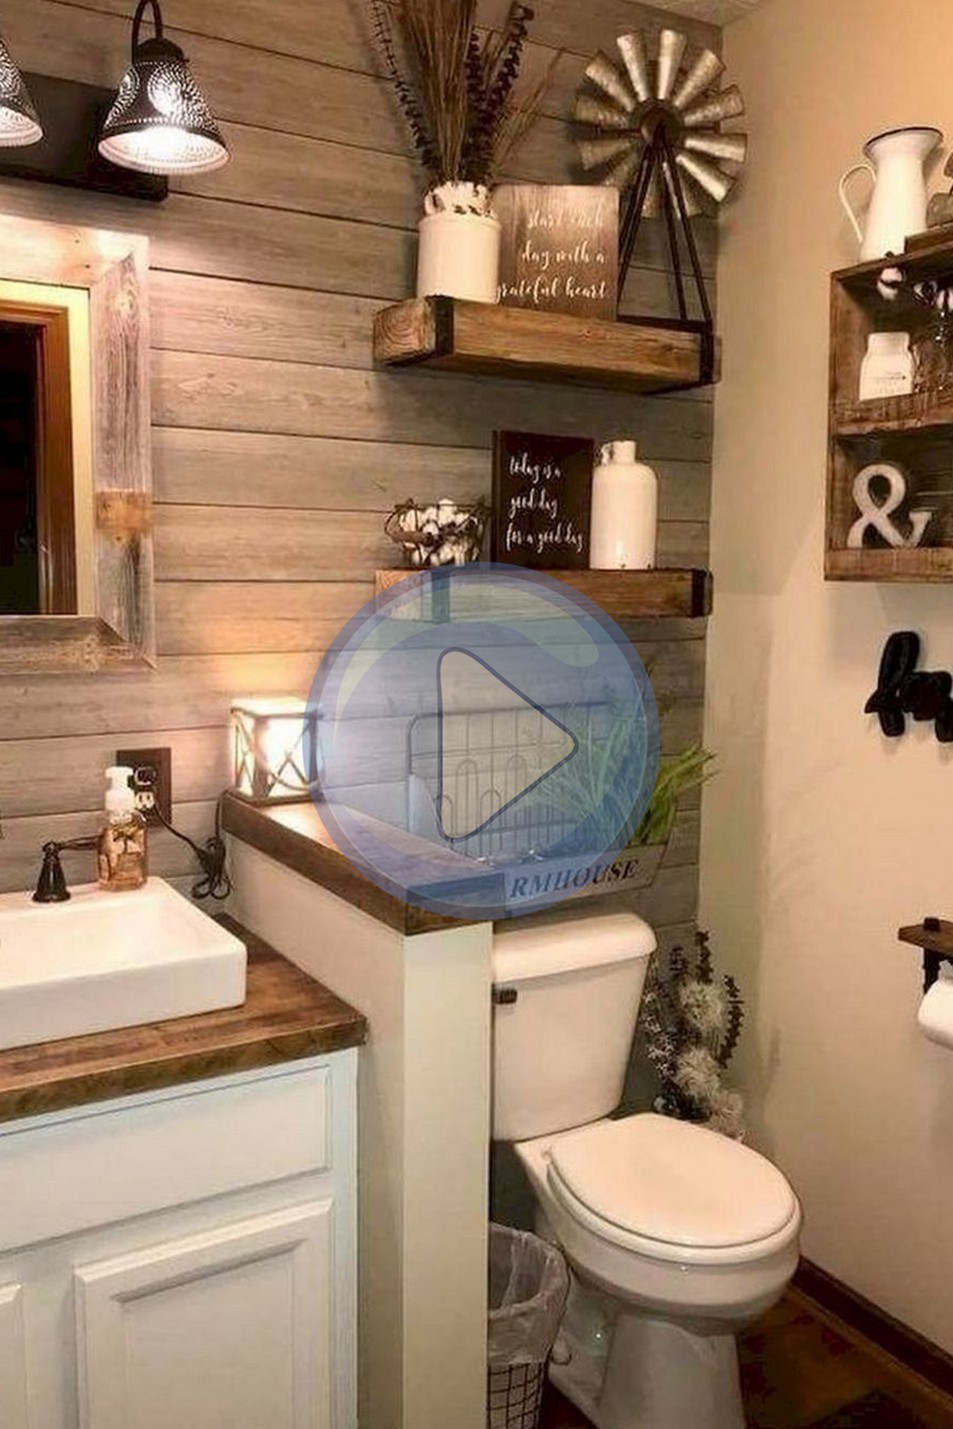 67 Rustic Home Decorating Ideas In 2020 Home Decor 28